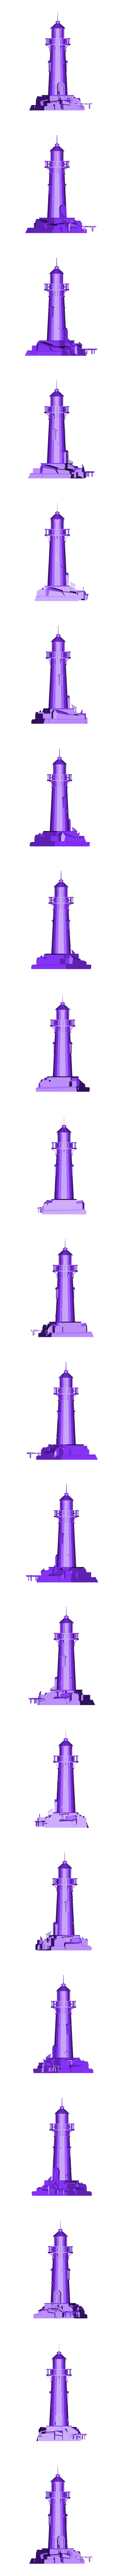 Lighthouse singly.obj Download free OBJ file Lighthouse • 3D printing template, Colorful3D